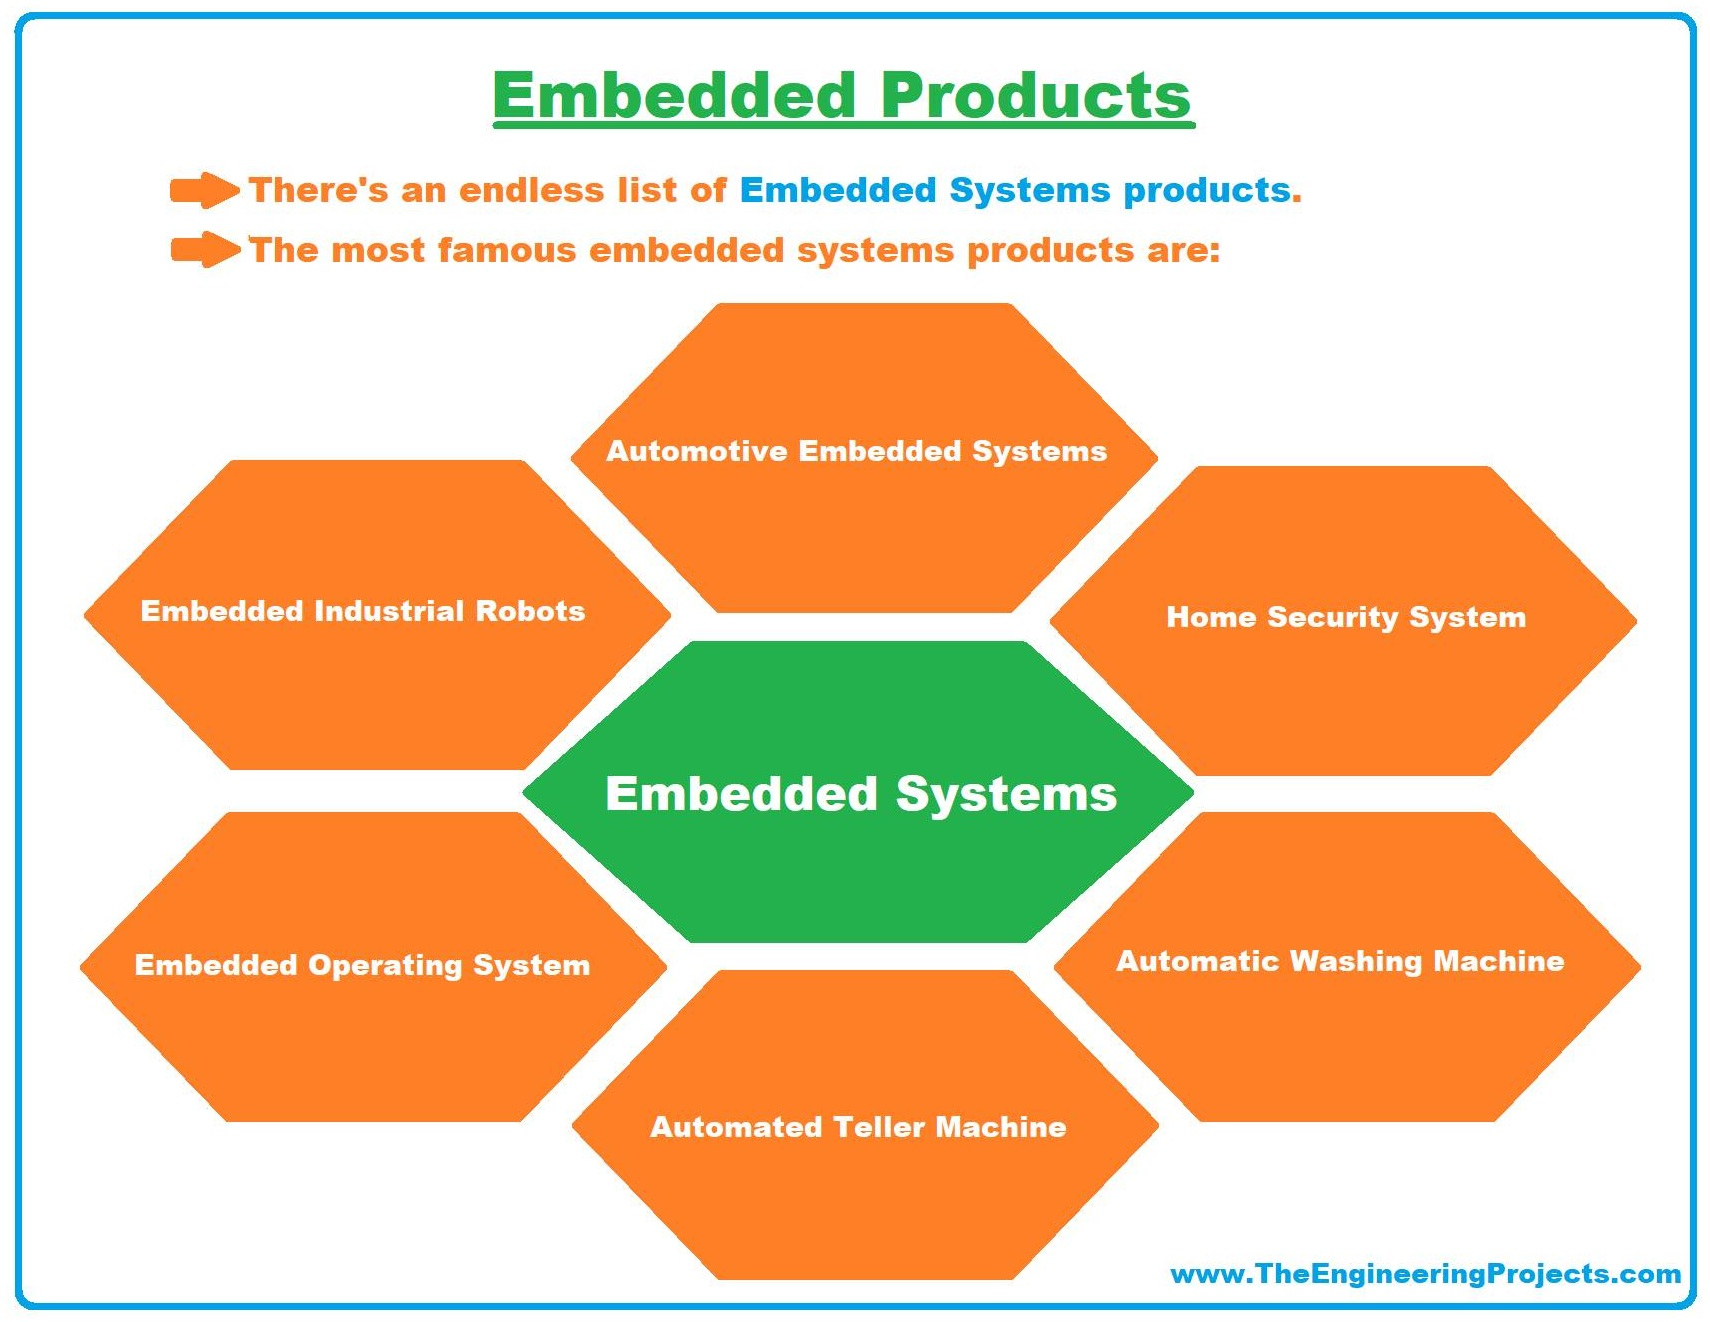 examples of embedded system, embedded systems examples, embedded system real life examples, real life embedded systems examples, embedded products, embedded systems products